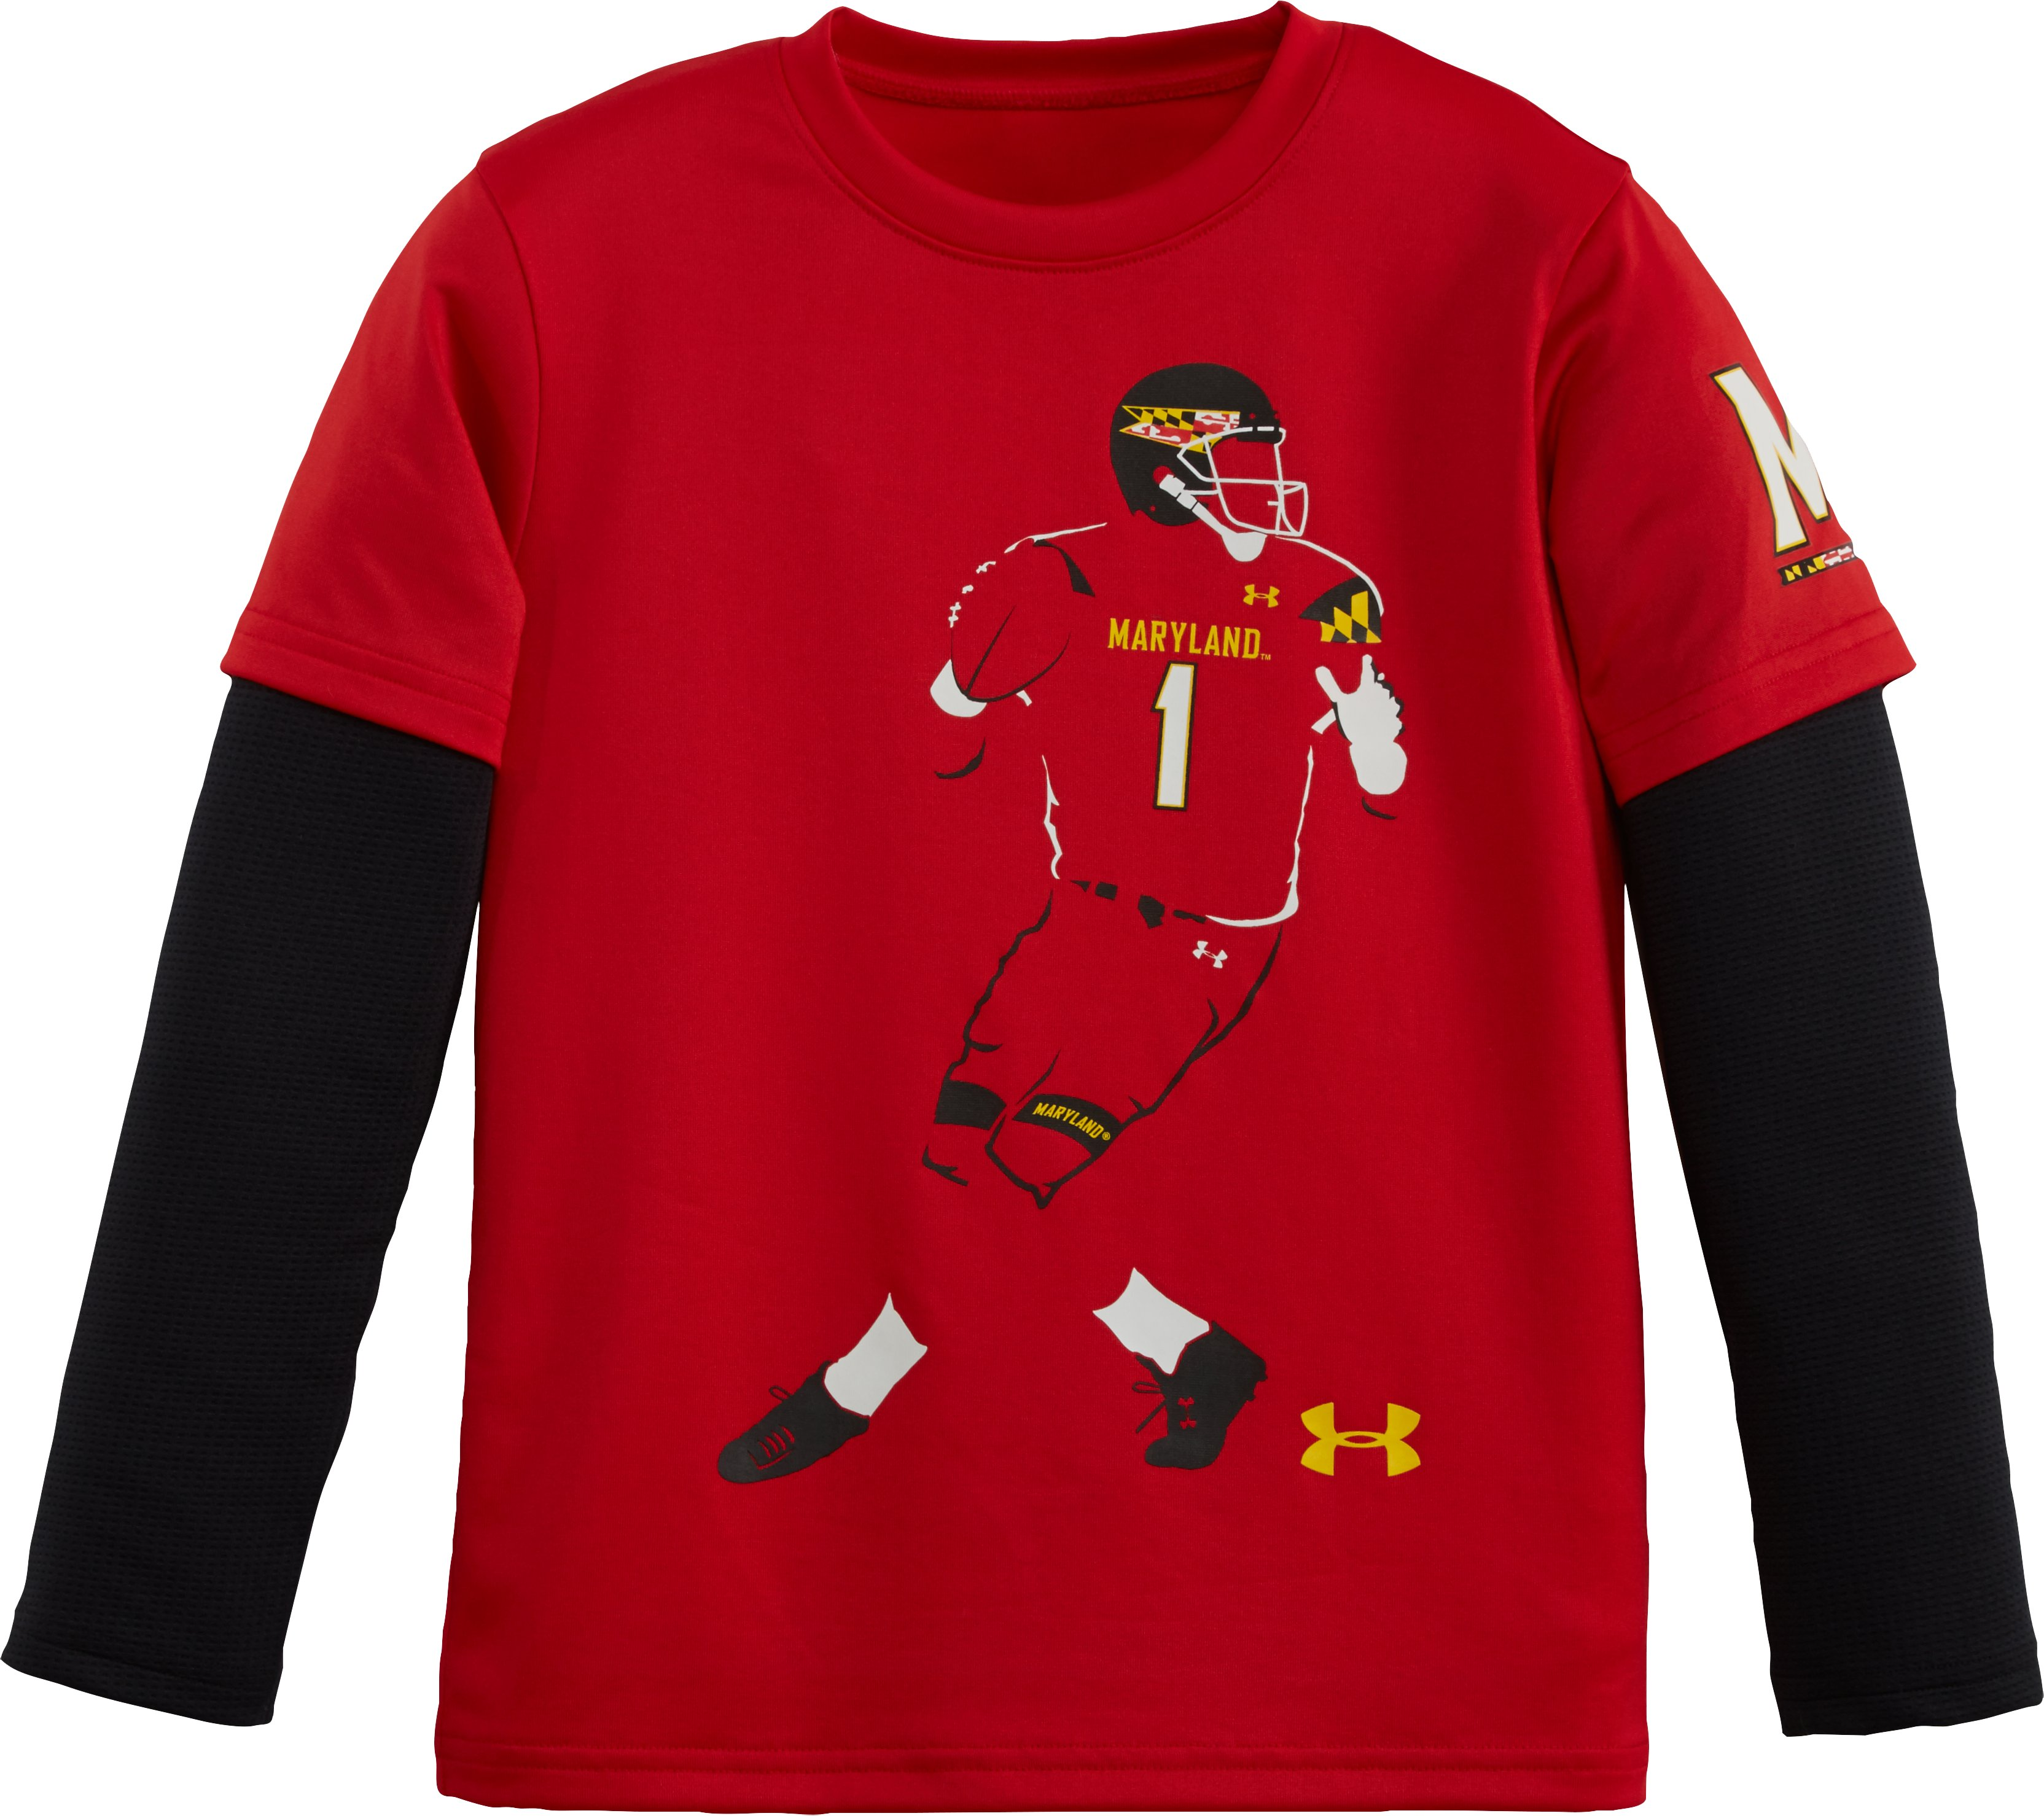 Boys' Pre-School Maryland Football Player Slider, Red